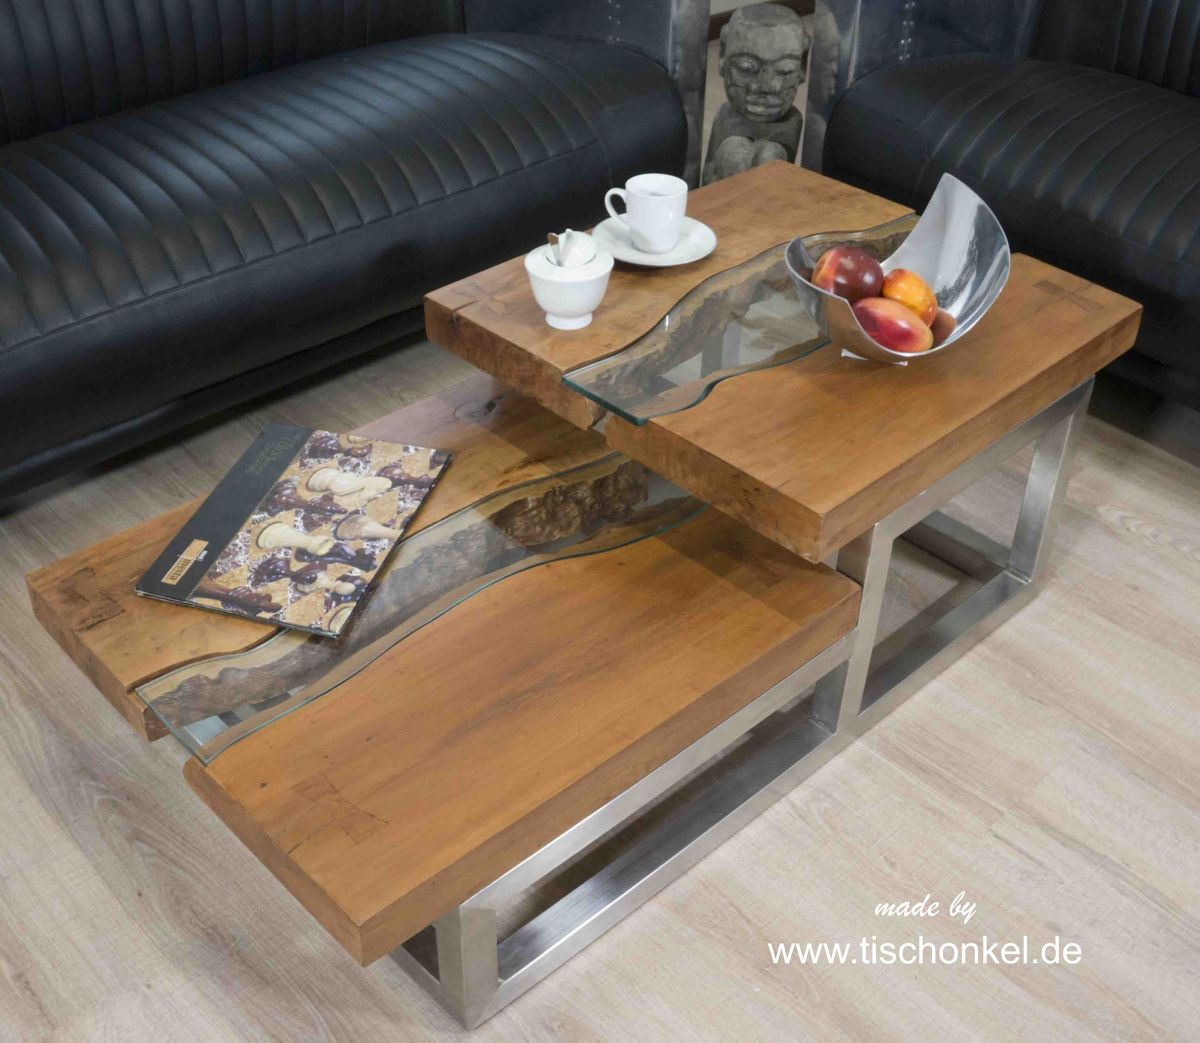 eleganter couchtisch aus holz der tischonkel. Black Bedroom Furniture Sets. Home Design Ideas